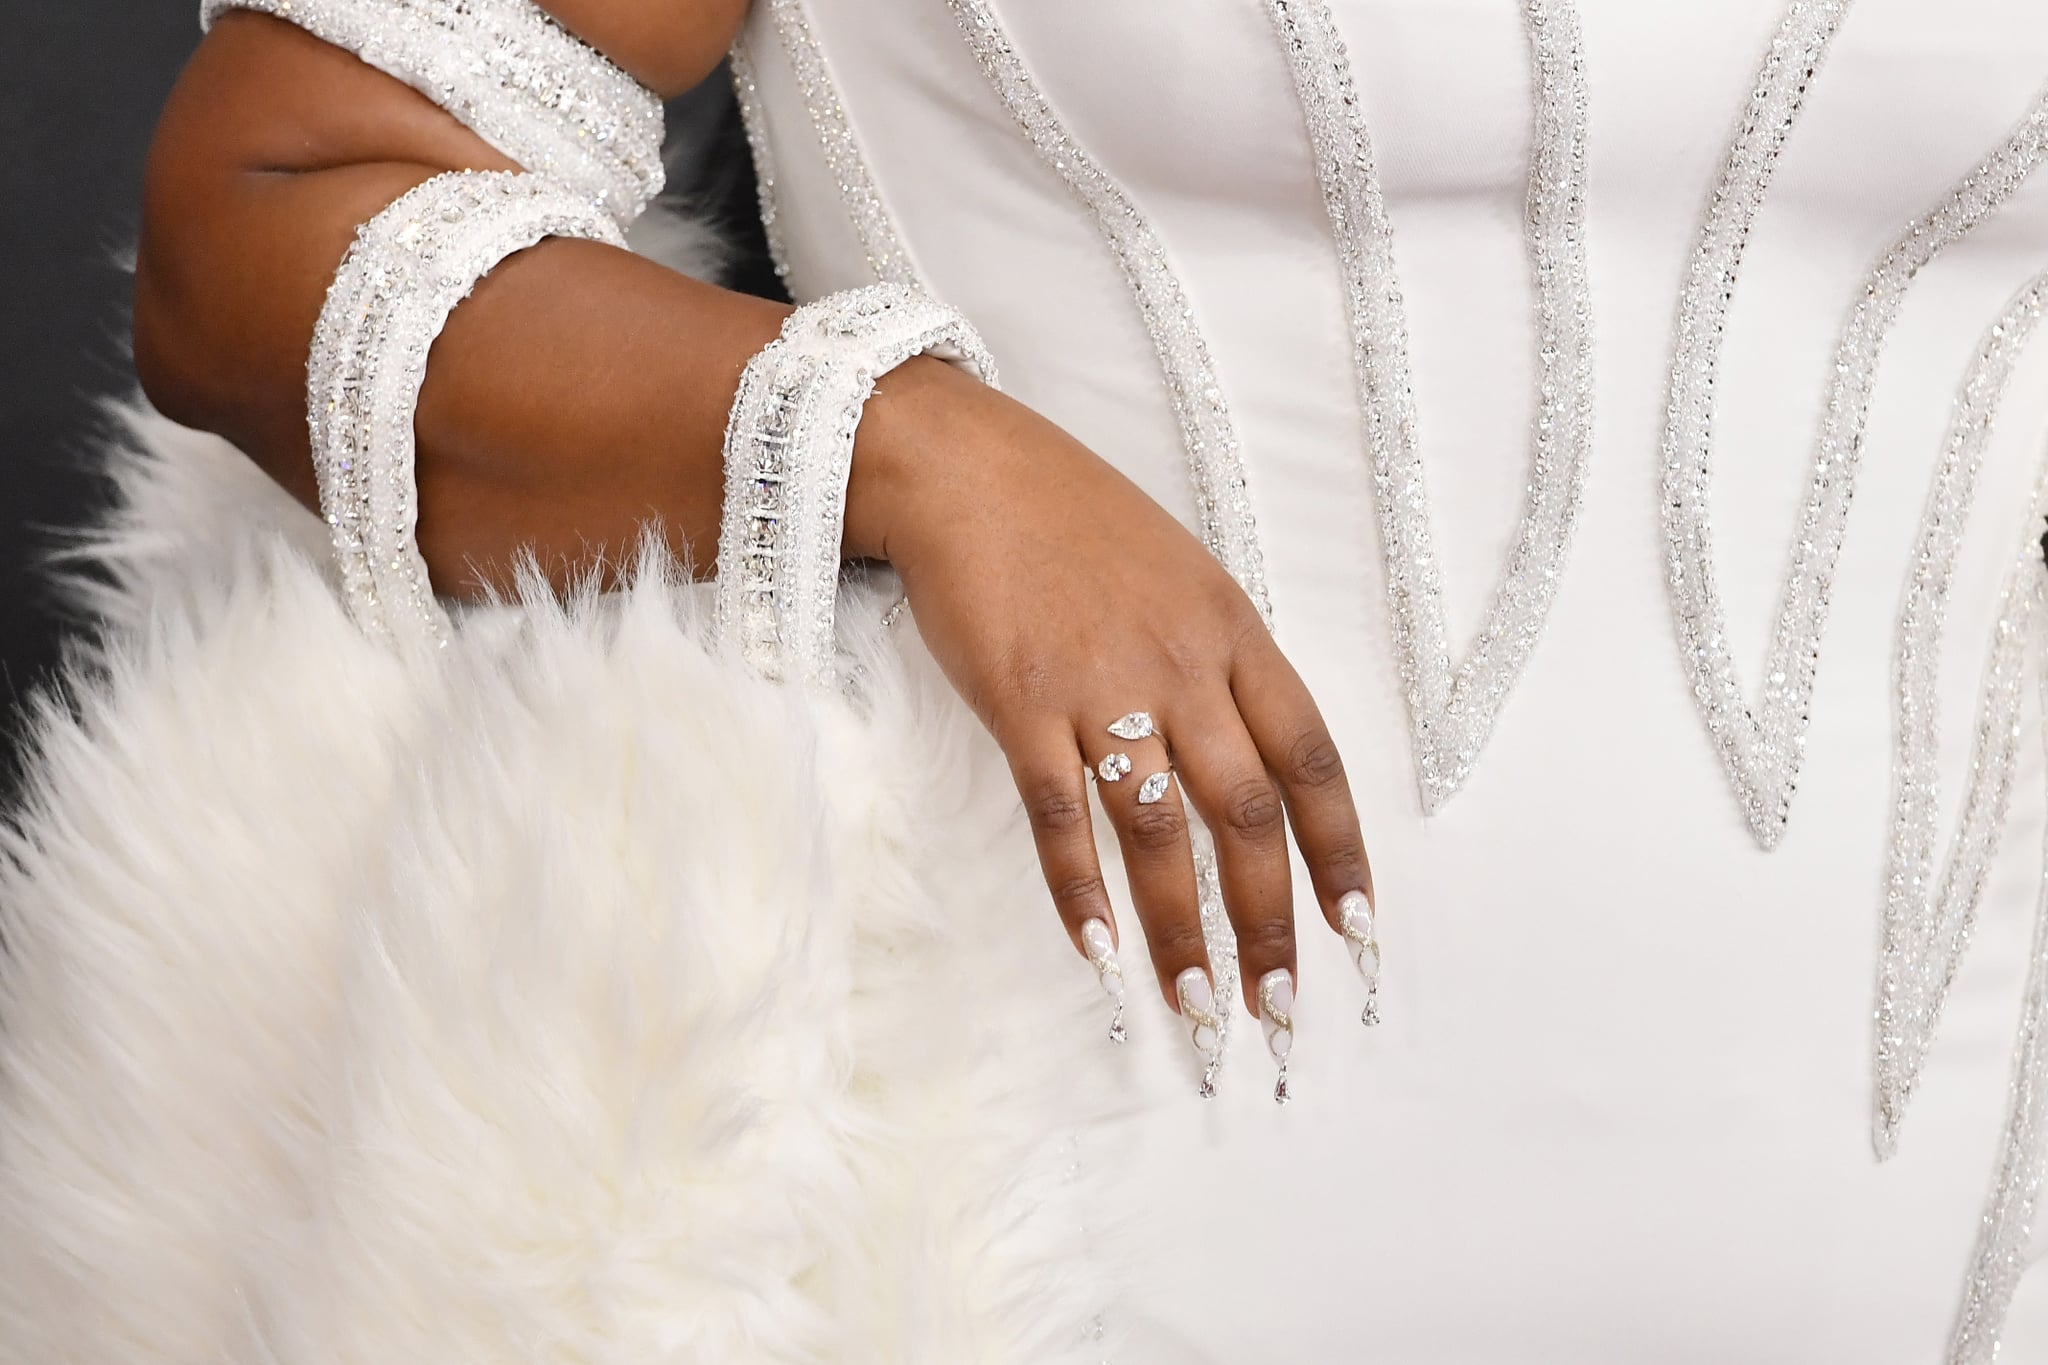 LOS ANGELES, CALIFORNIA - JANUARY 26: Lizzo, ring, manicure, purse, and fashion detail, attends the 62nd Annual GRAMMY Awards at STAPLES Centre on January 26, 2020 in Los Angeles, California. (Photo by Frazer Harrison/Getty Images for The Recording Academy)